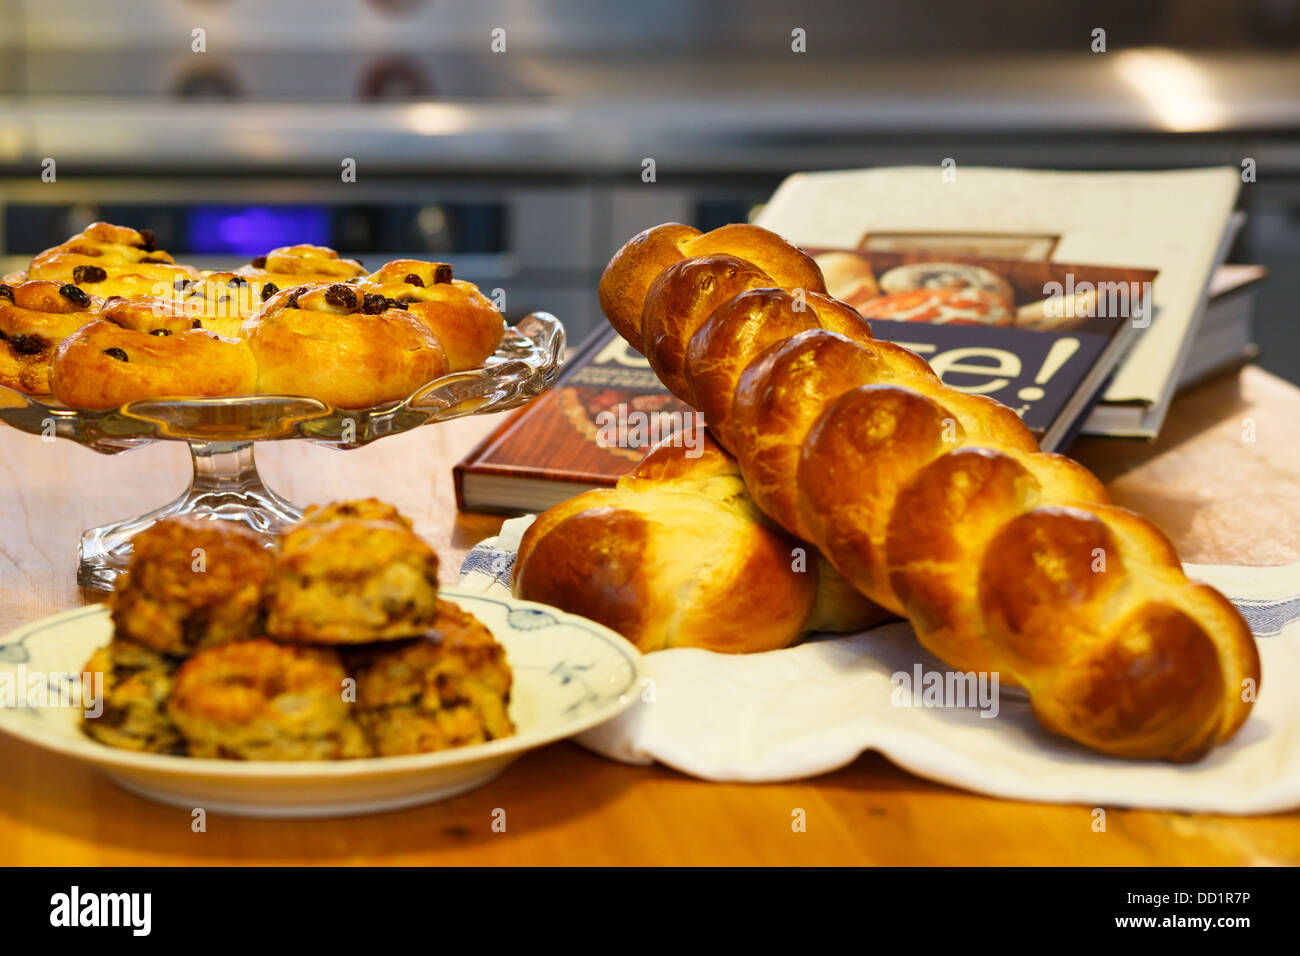 Mouth watering assortment of bakery items neatly arranged along with recipe books. - Stock Image